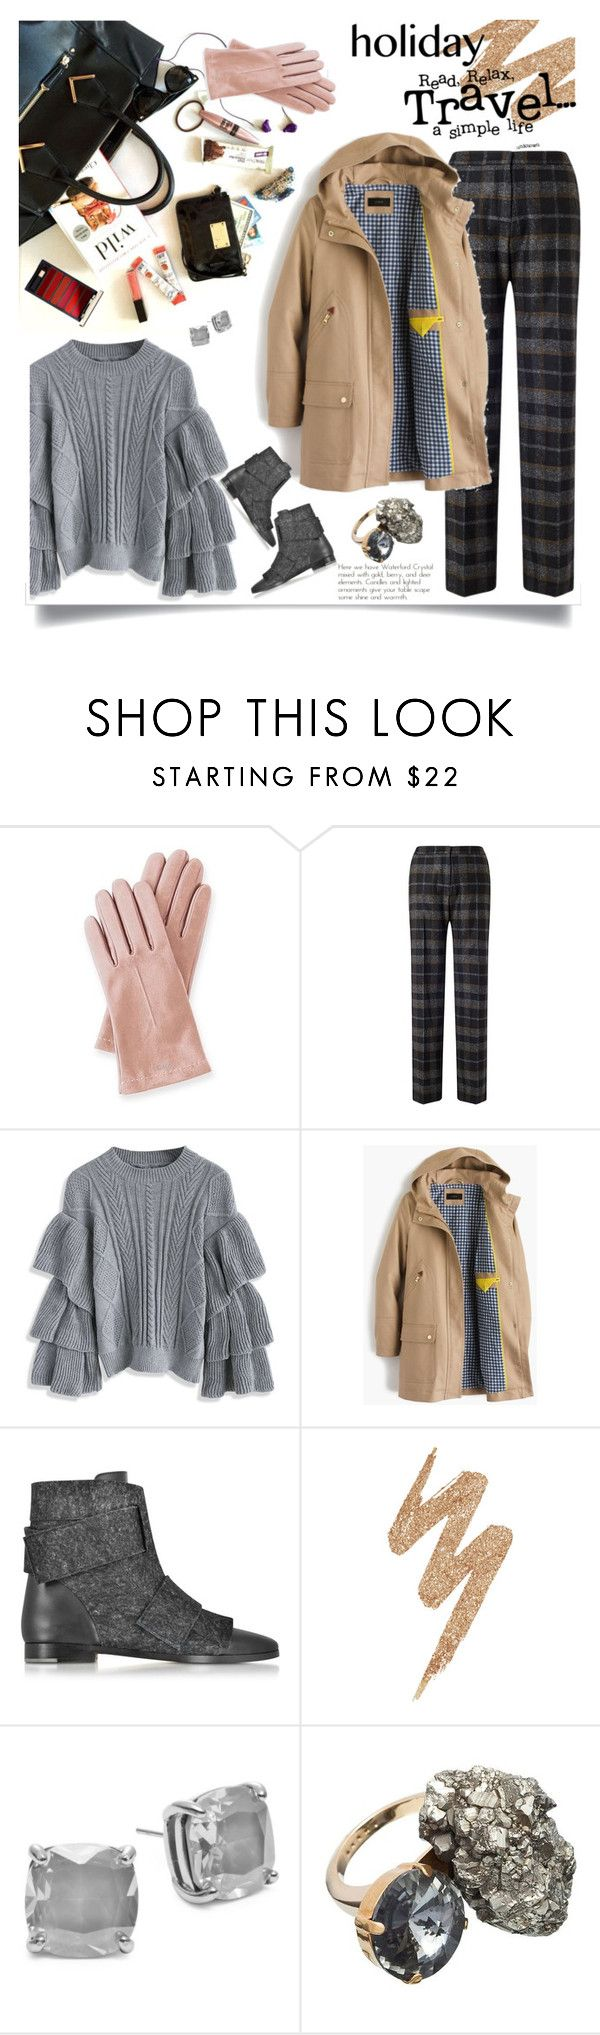 """624"" by believelikebreathing ❤ liked on Polyvore featuring Mark & Graham, Jigsaw, Chicwish, J.Crew, Zoe Lee, Urban Decay, Kate Spade, Marni and Packandgo"